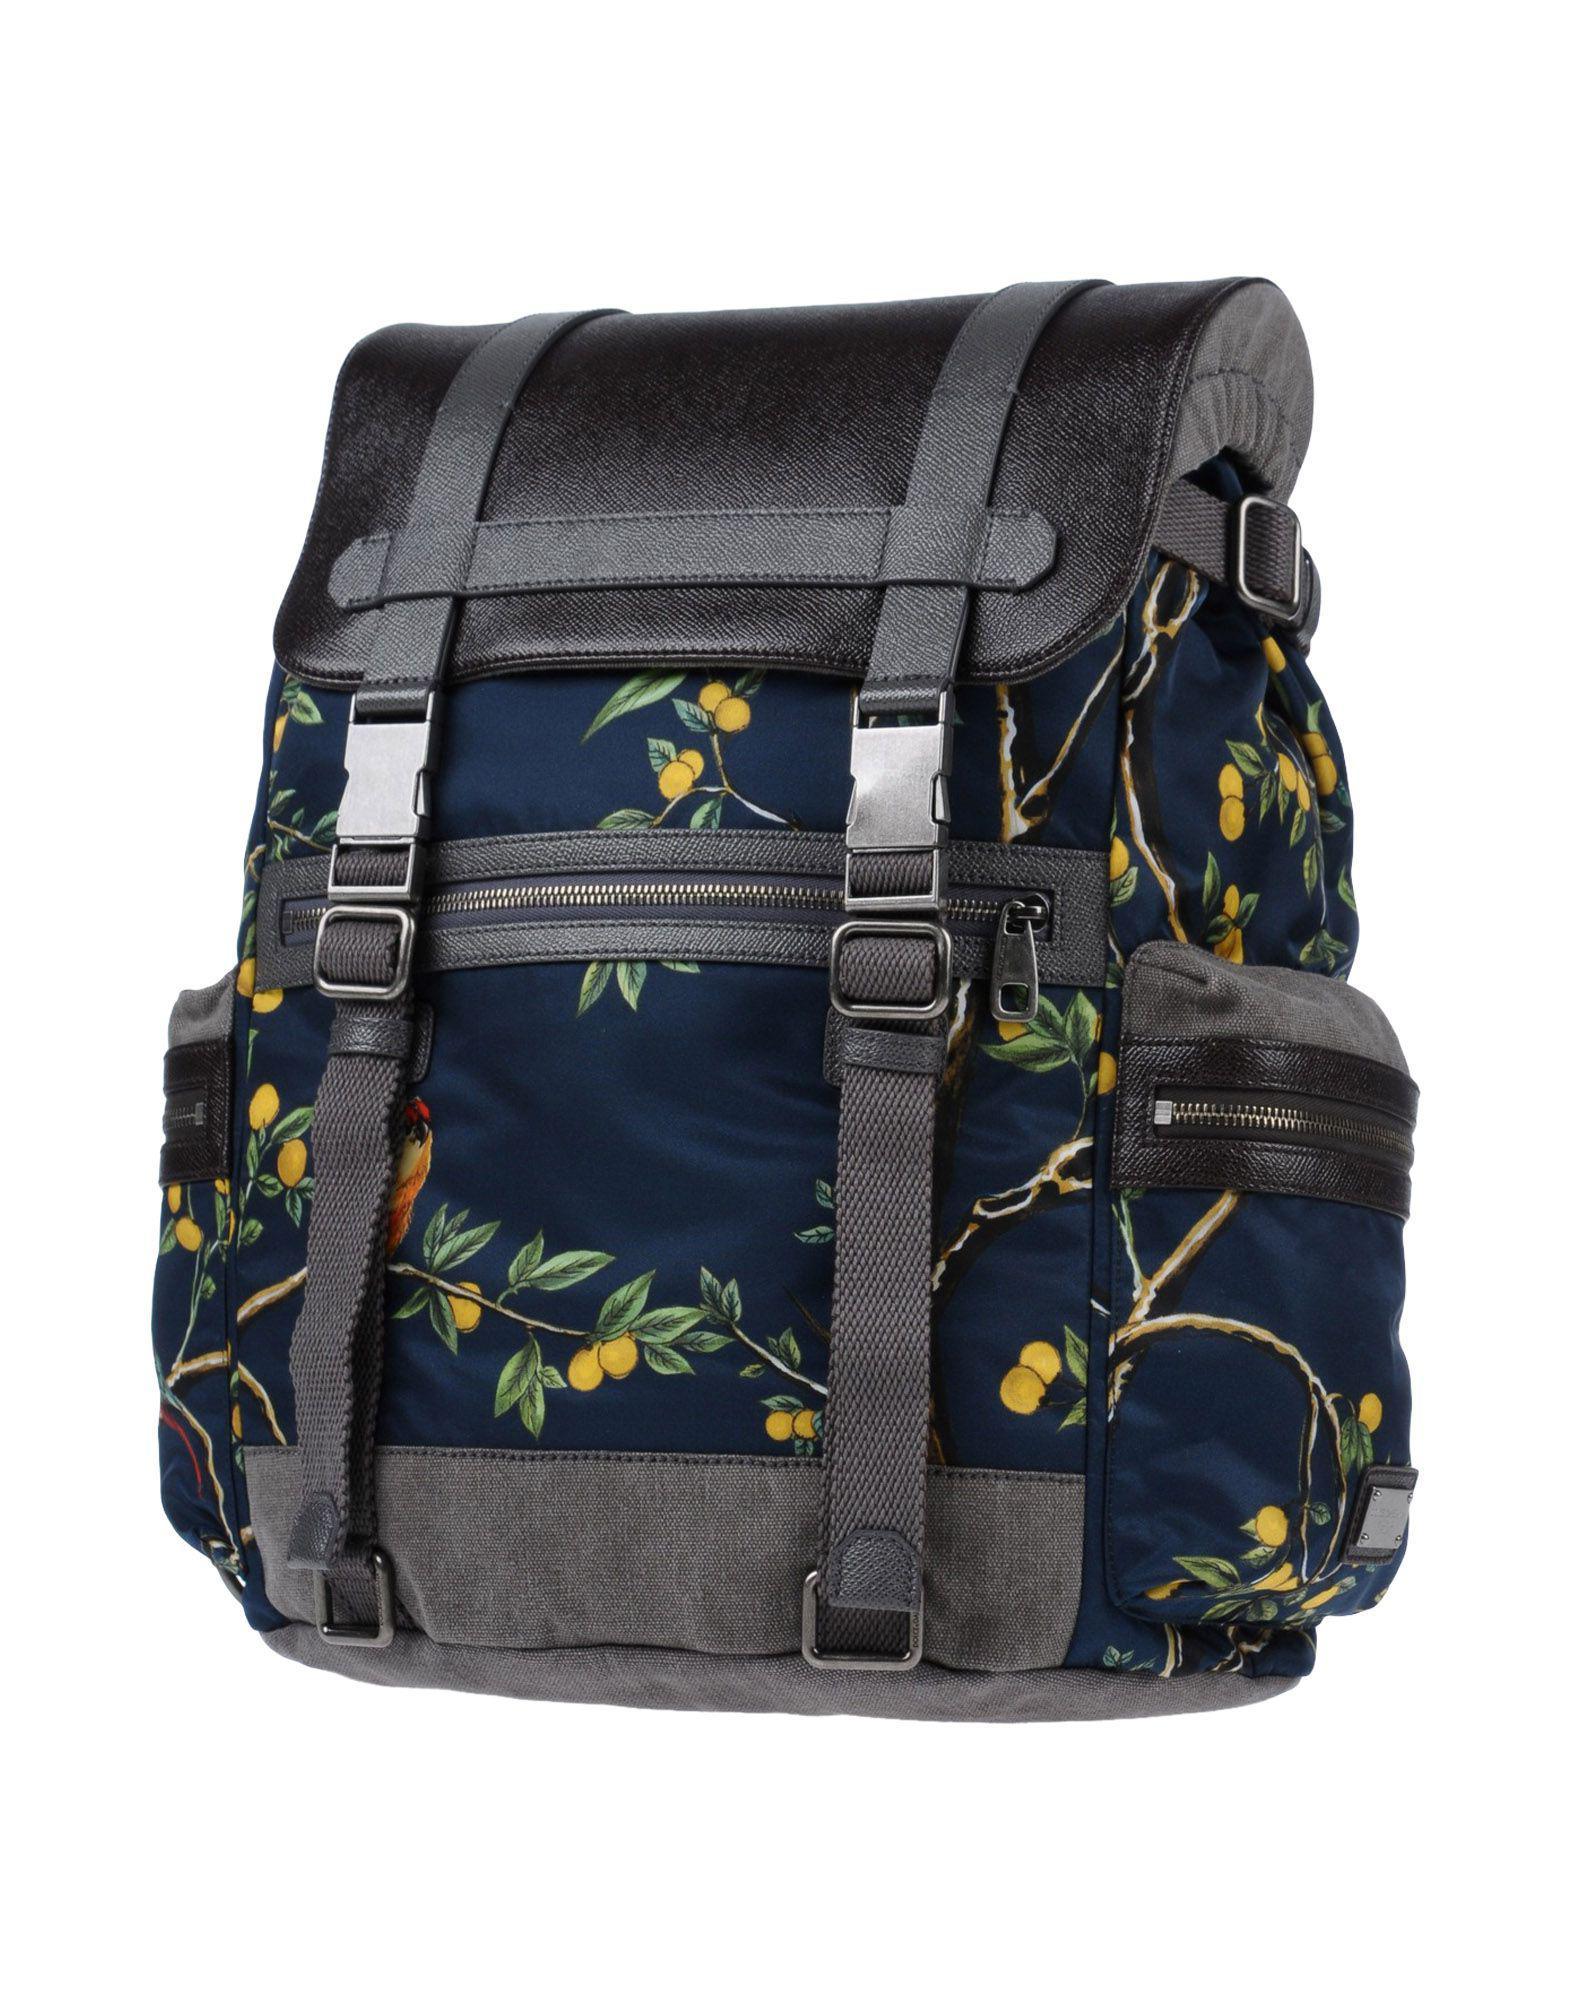 Dolce   Gabbana Backpacks   Bum Bags in Gray for Men - Lyst 5ae33ccb50